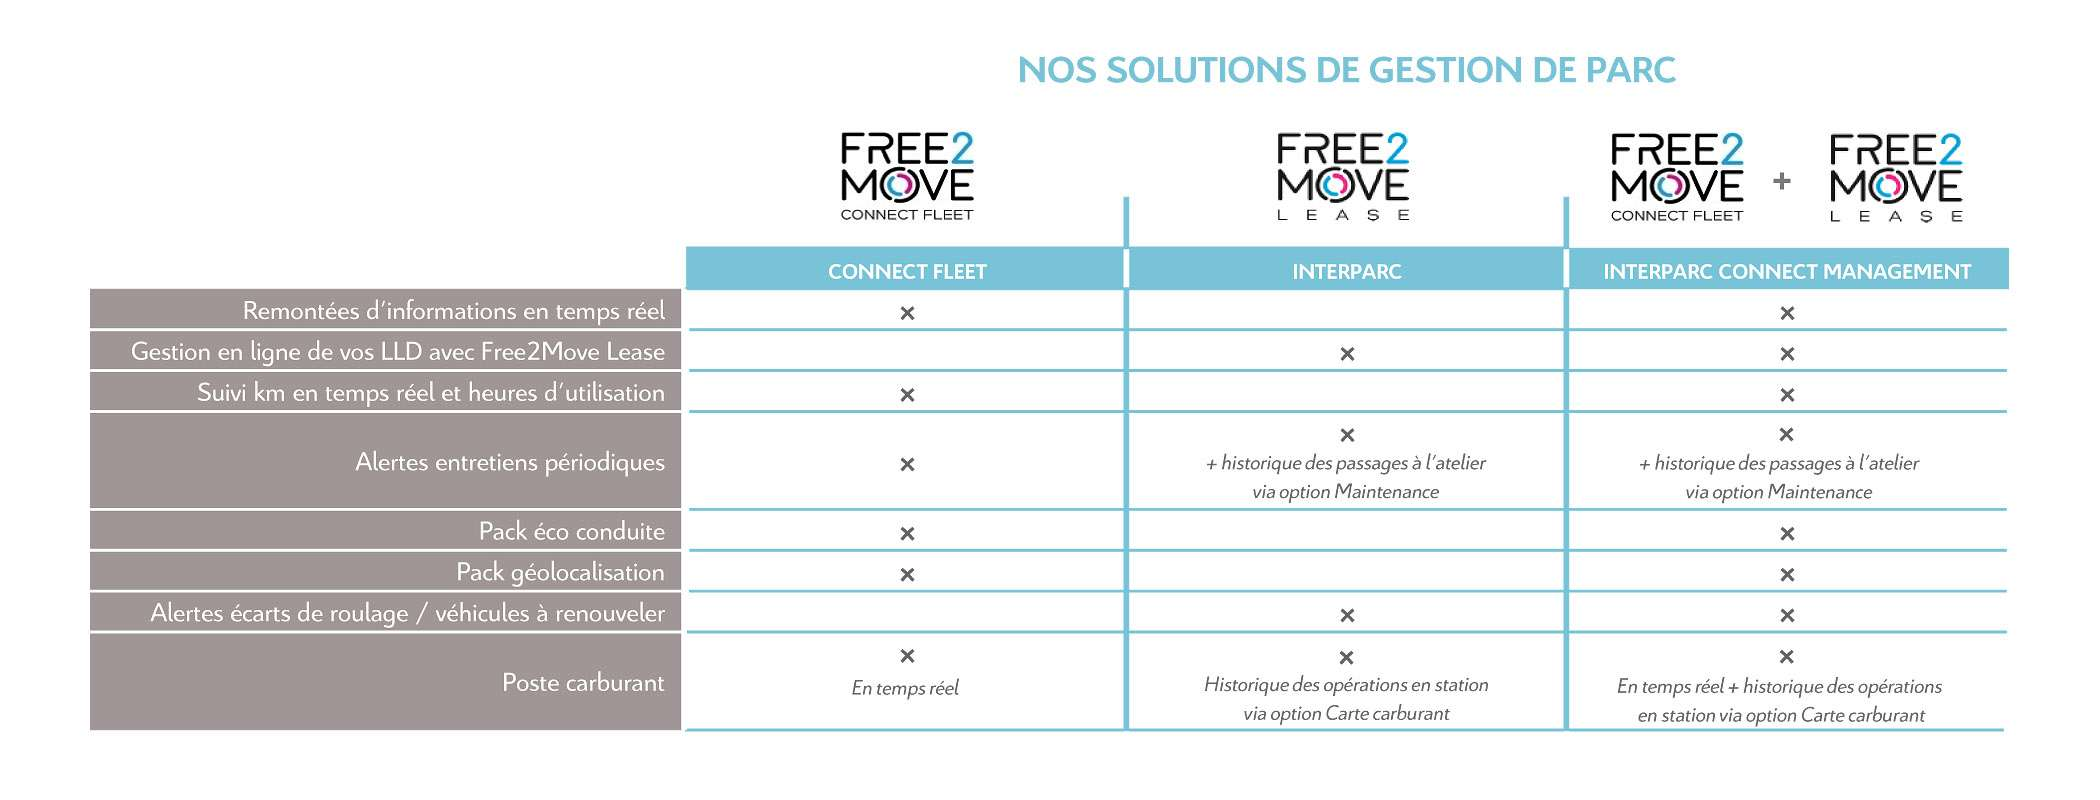 Tableau gestion de parc FREE2MOVE LEASE